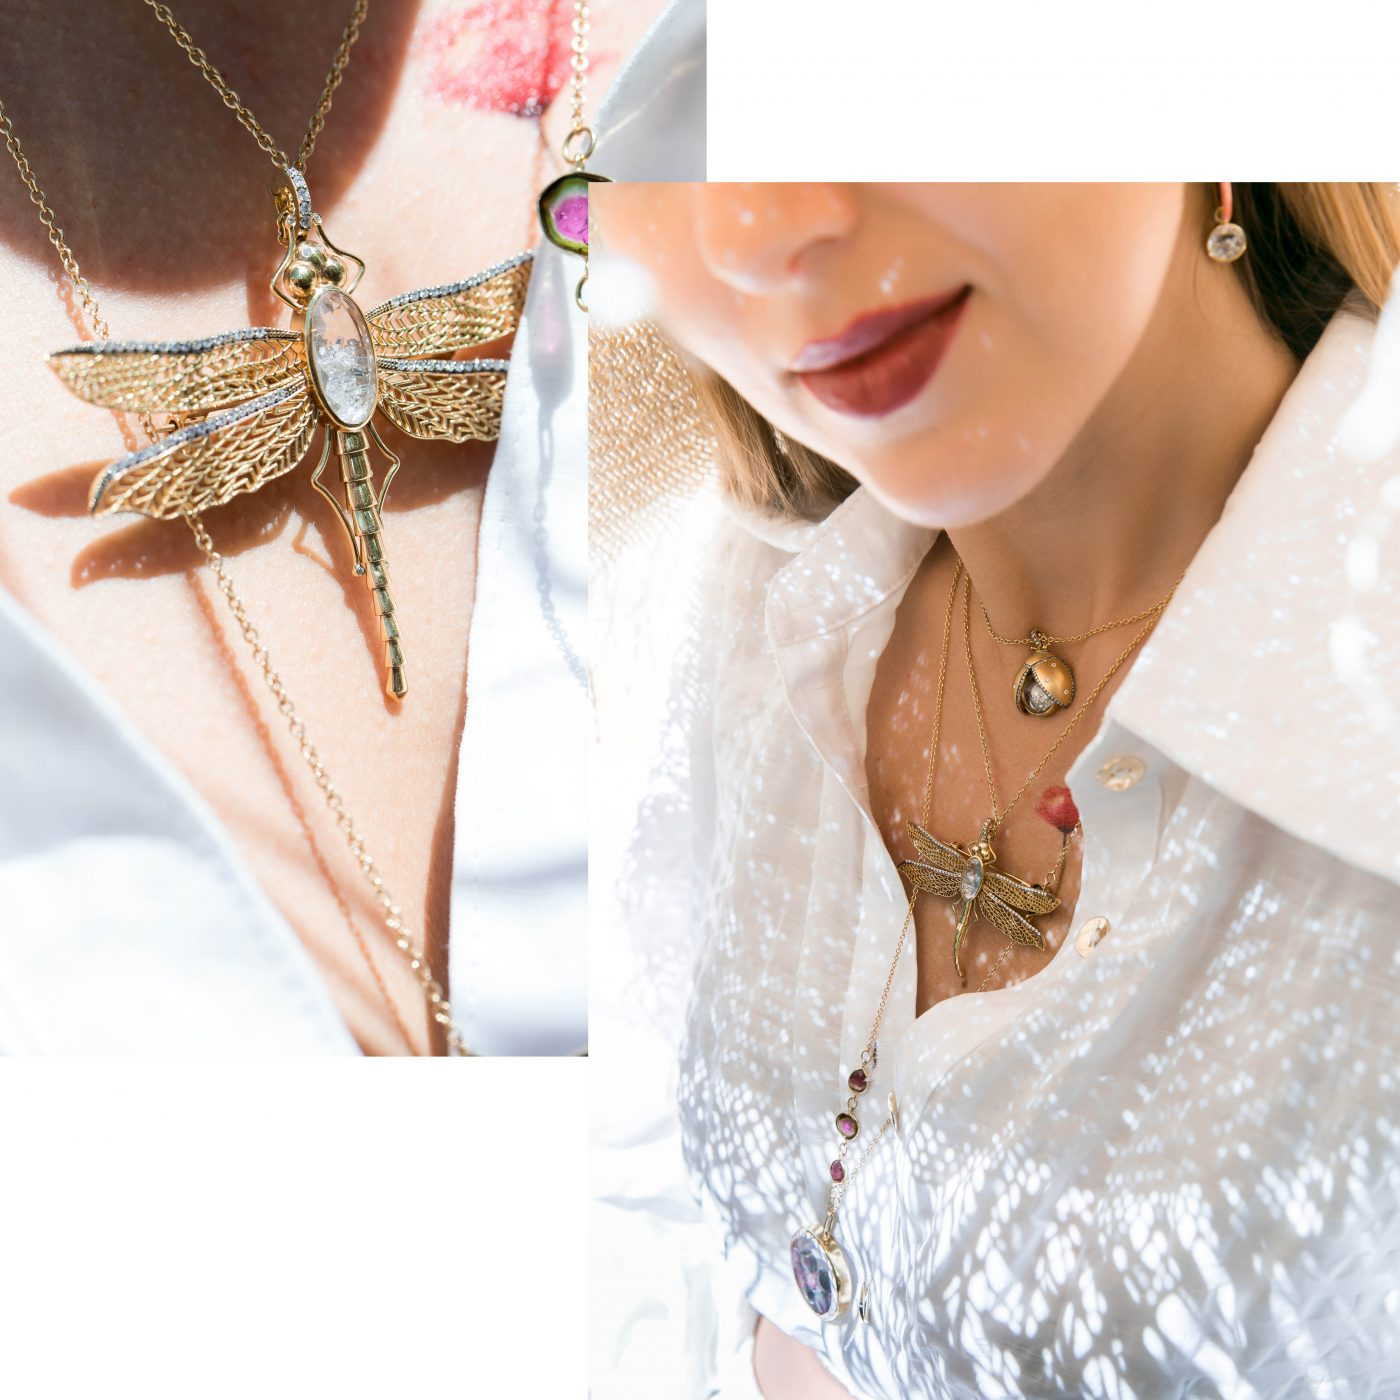 GET THE LOOK: TIMELESS BUG JEWELLERY TREND